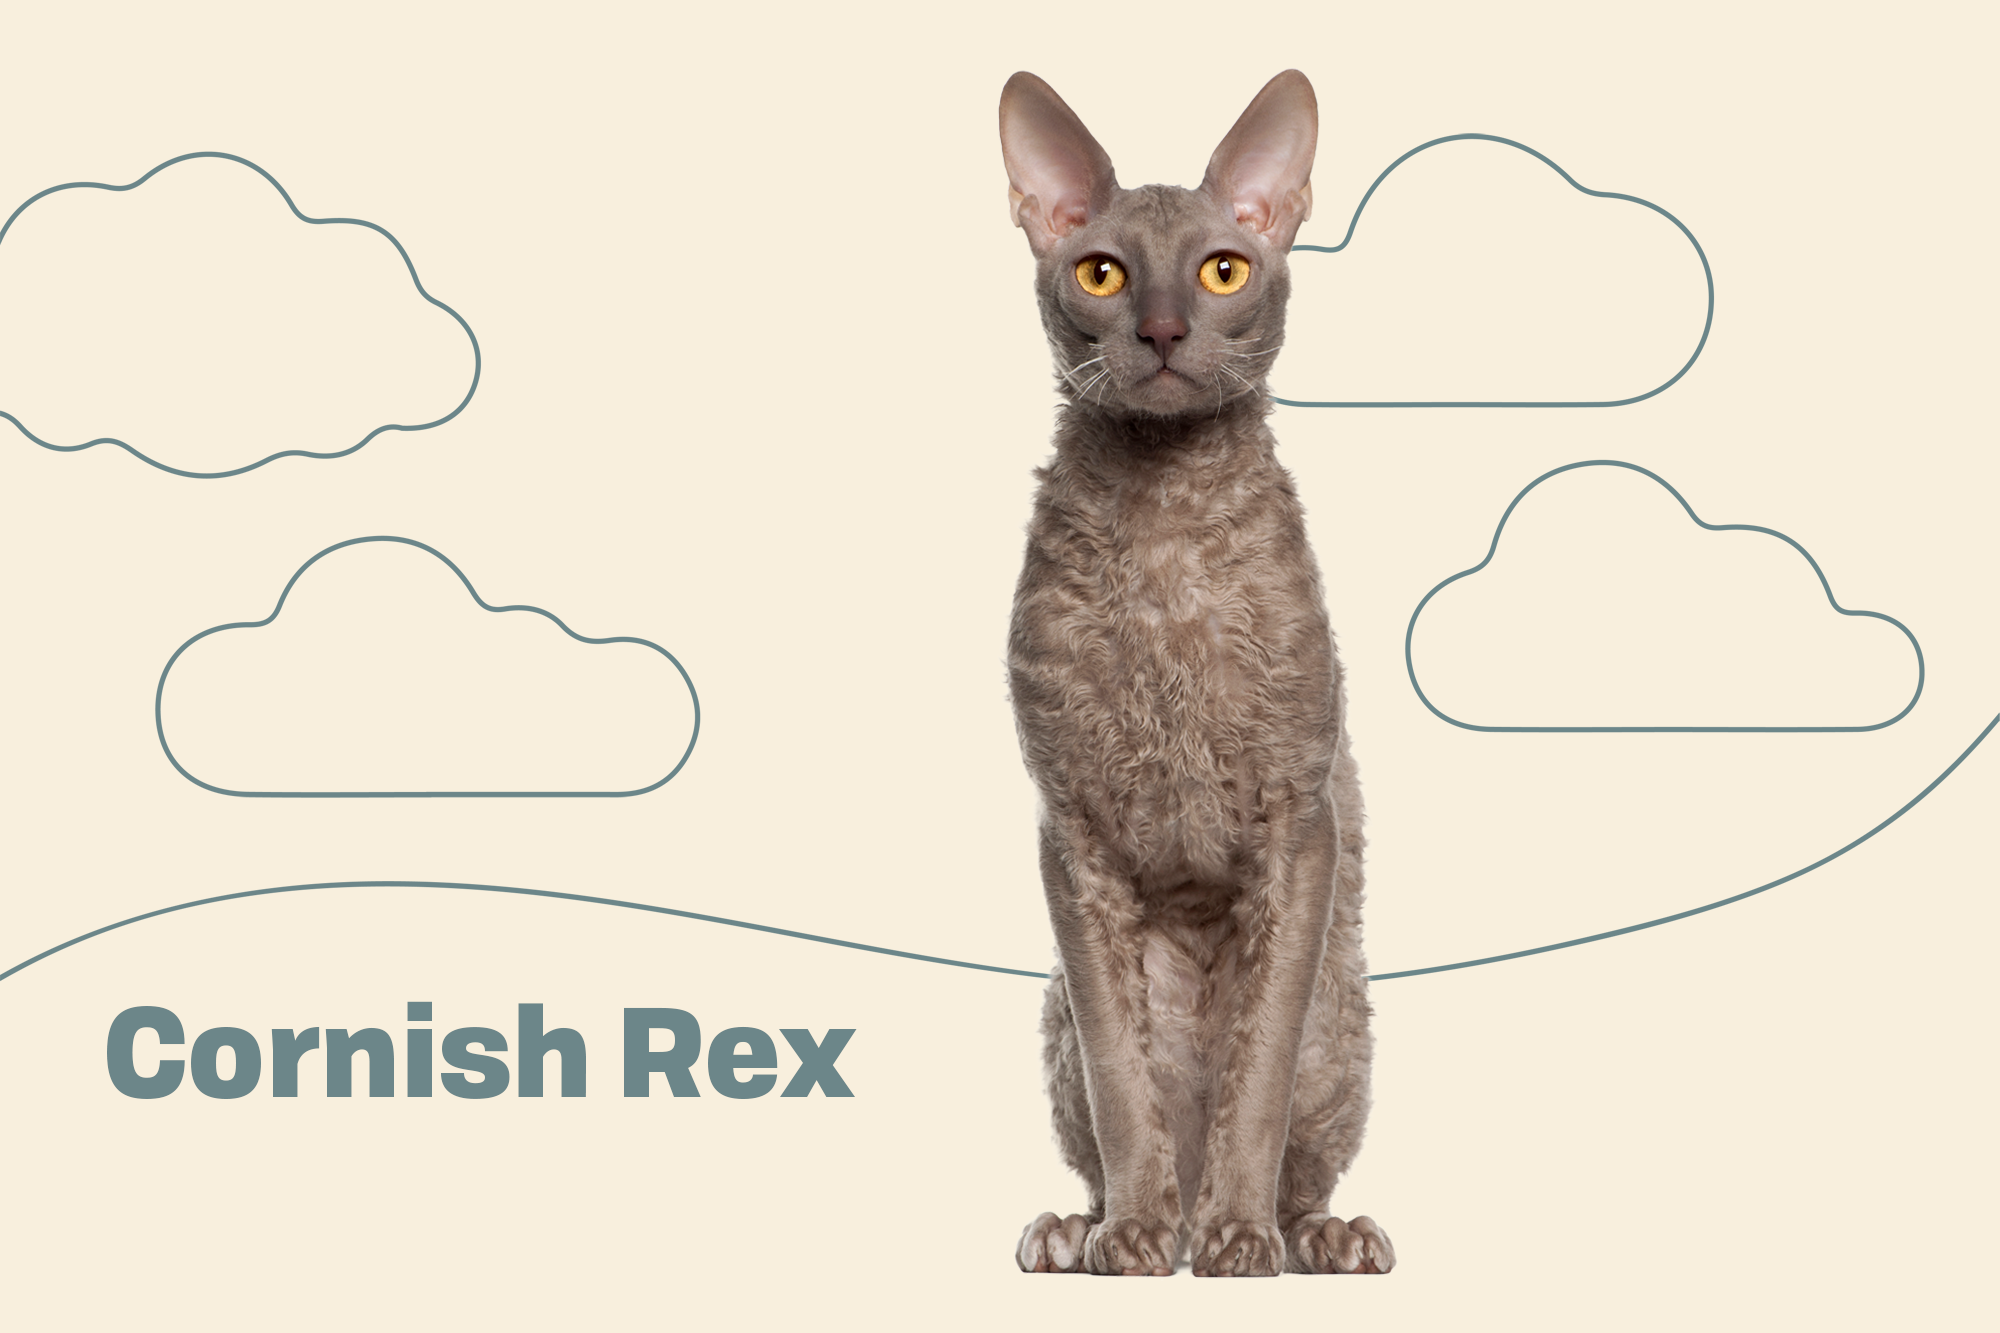 Cornish Rex Breed Photo